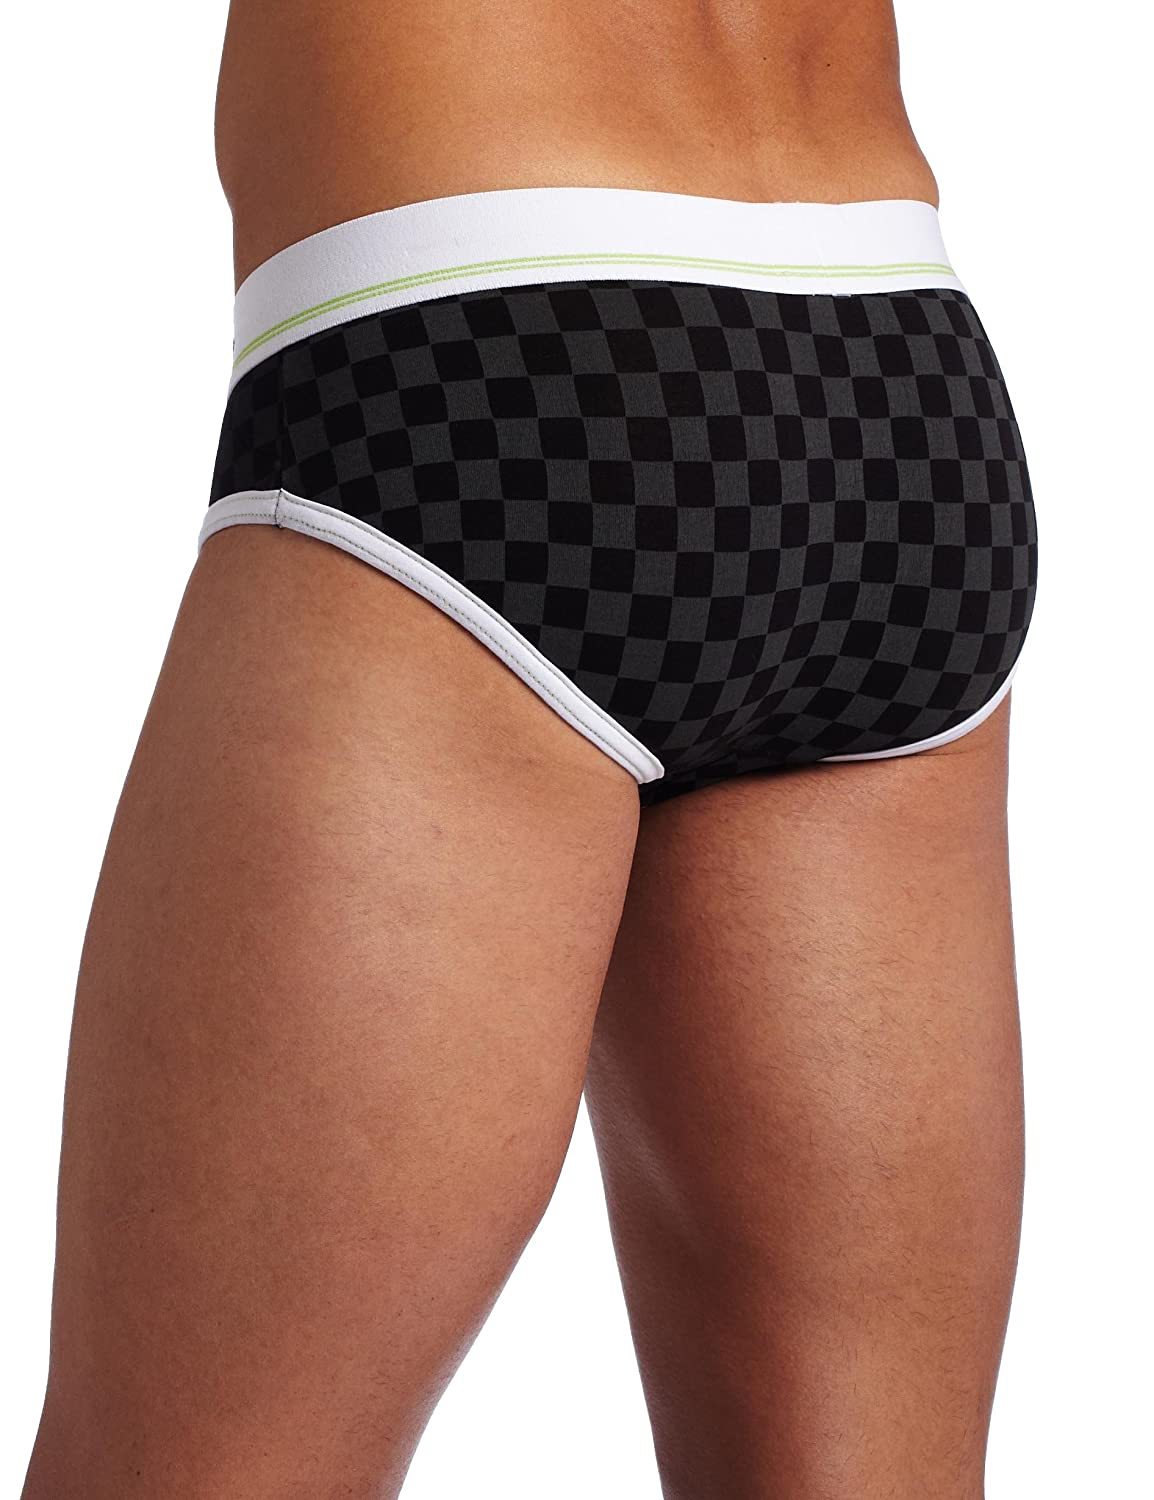 Piss & Vinegar Men's Limitless Yummy Low Rise Brief, Black/Green, Small:  Amazon.in: Clothing & Accessories